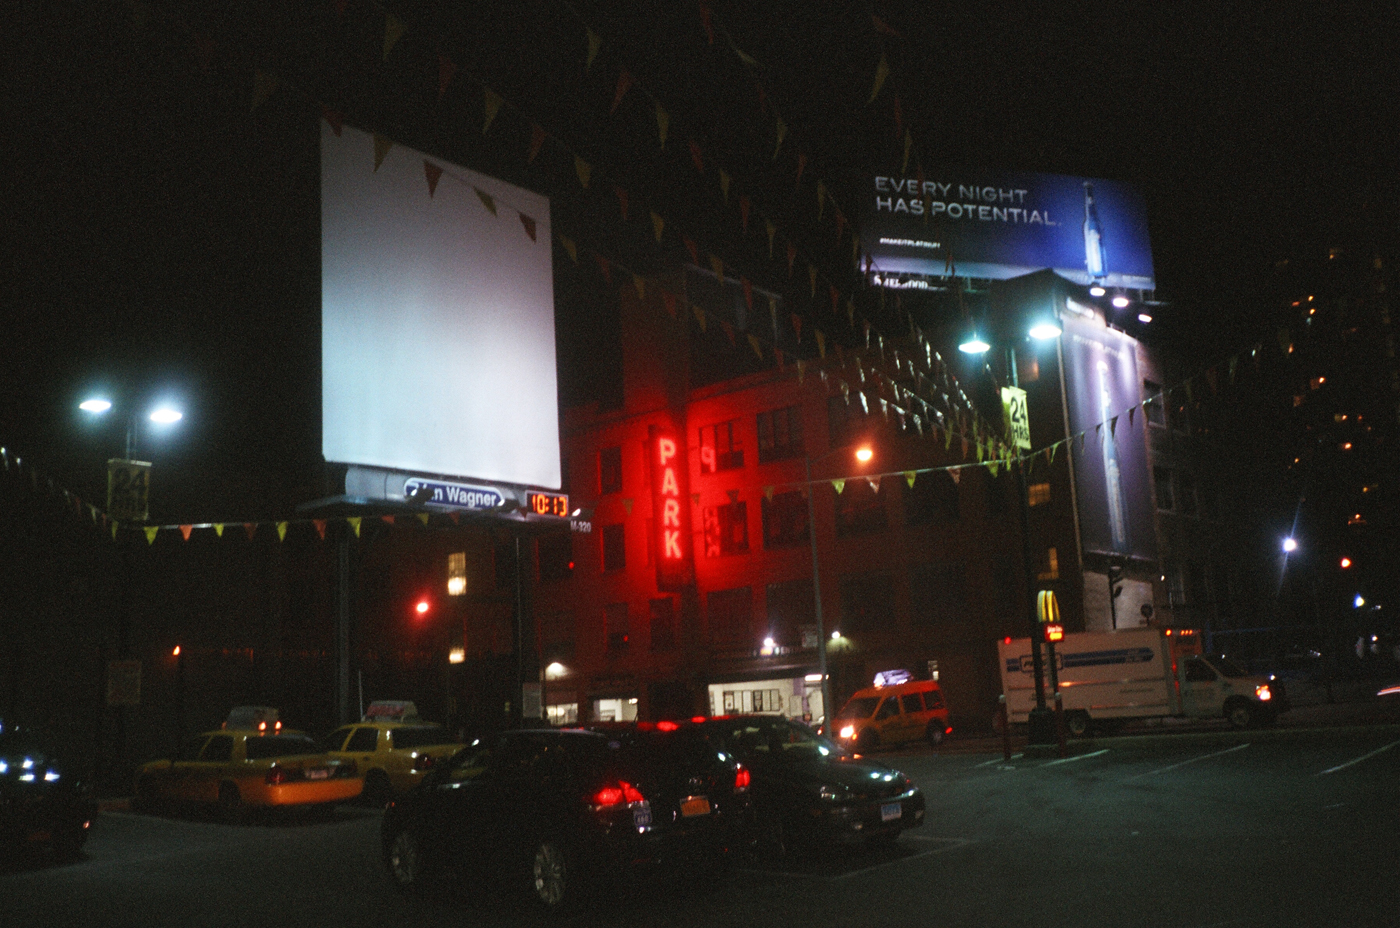 Fig 31. Jamie Brett (Own Work), Billboard, Lower West, NYC, 2012.